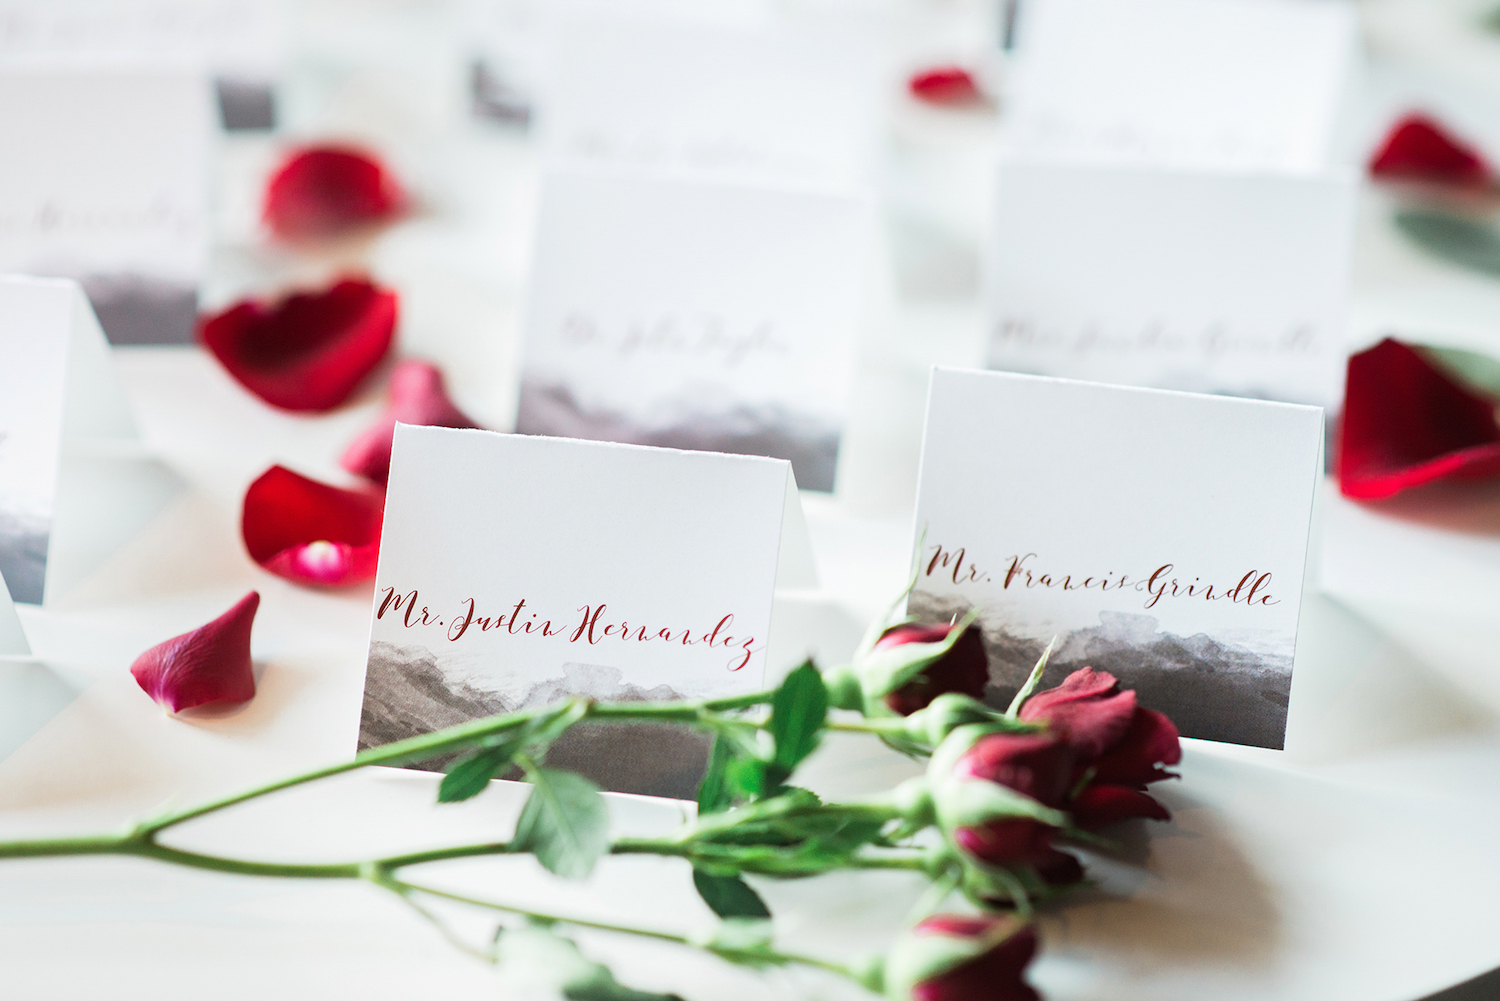 Wedding Place Cards with an Urban Vibe — Luxurious and romantic vintage wedding inspiration in an urban venue — photo by Marianne Blackham Photography — as seen on www.BrendasWeddingBlog.com